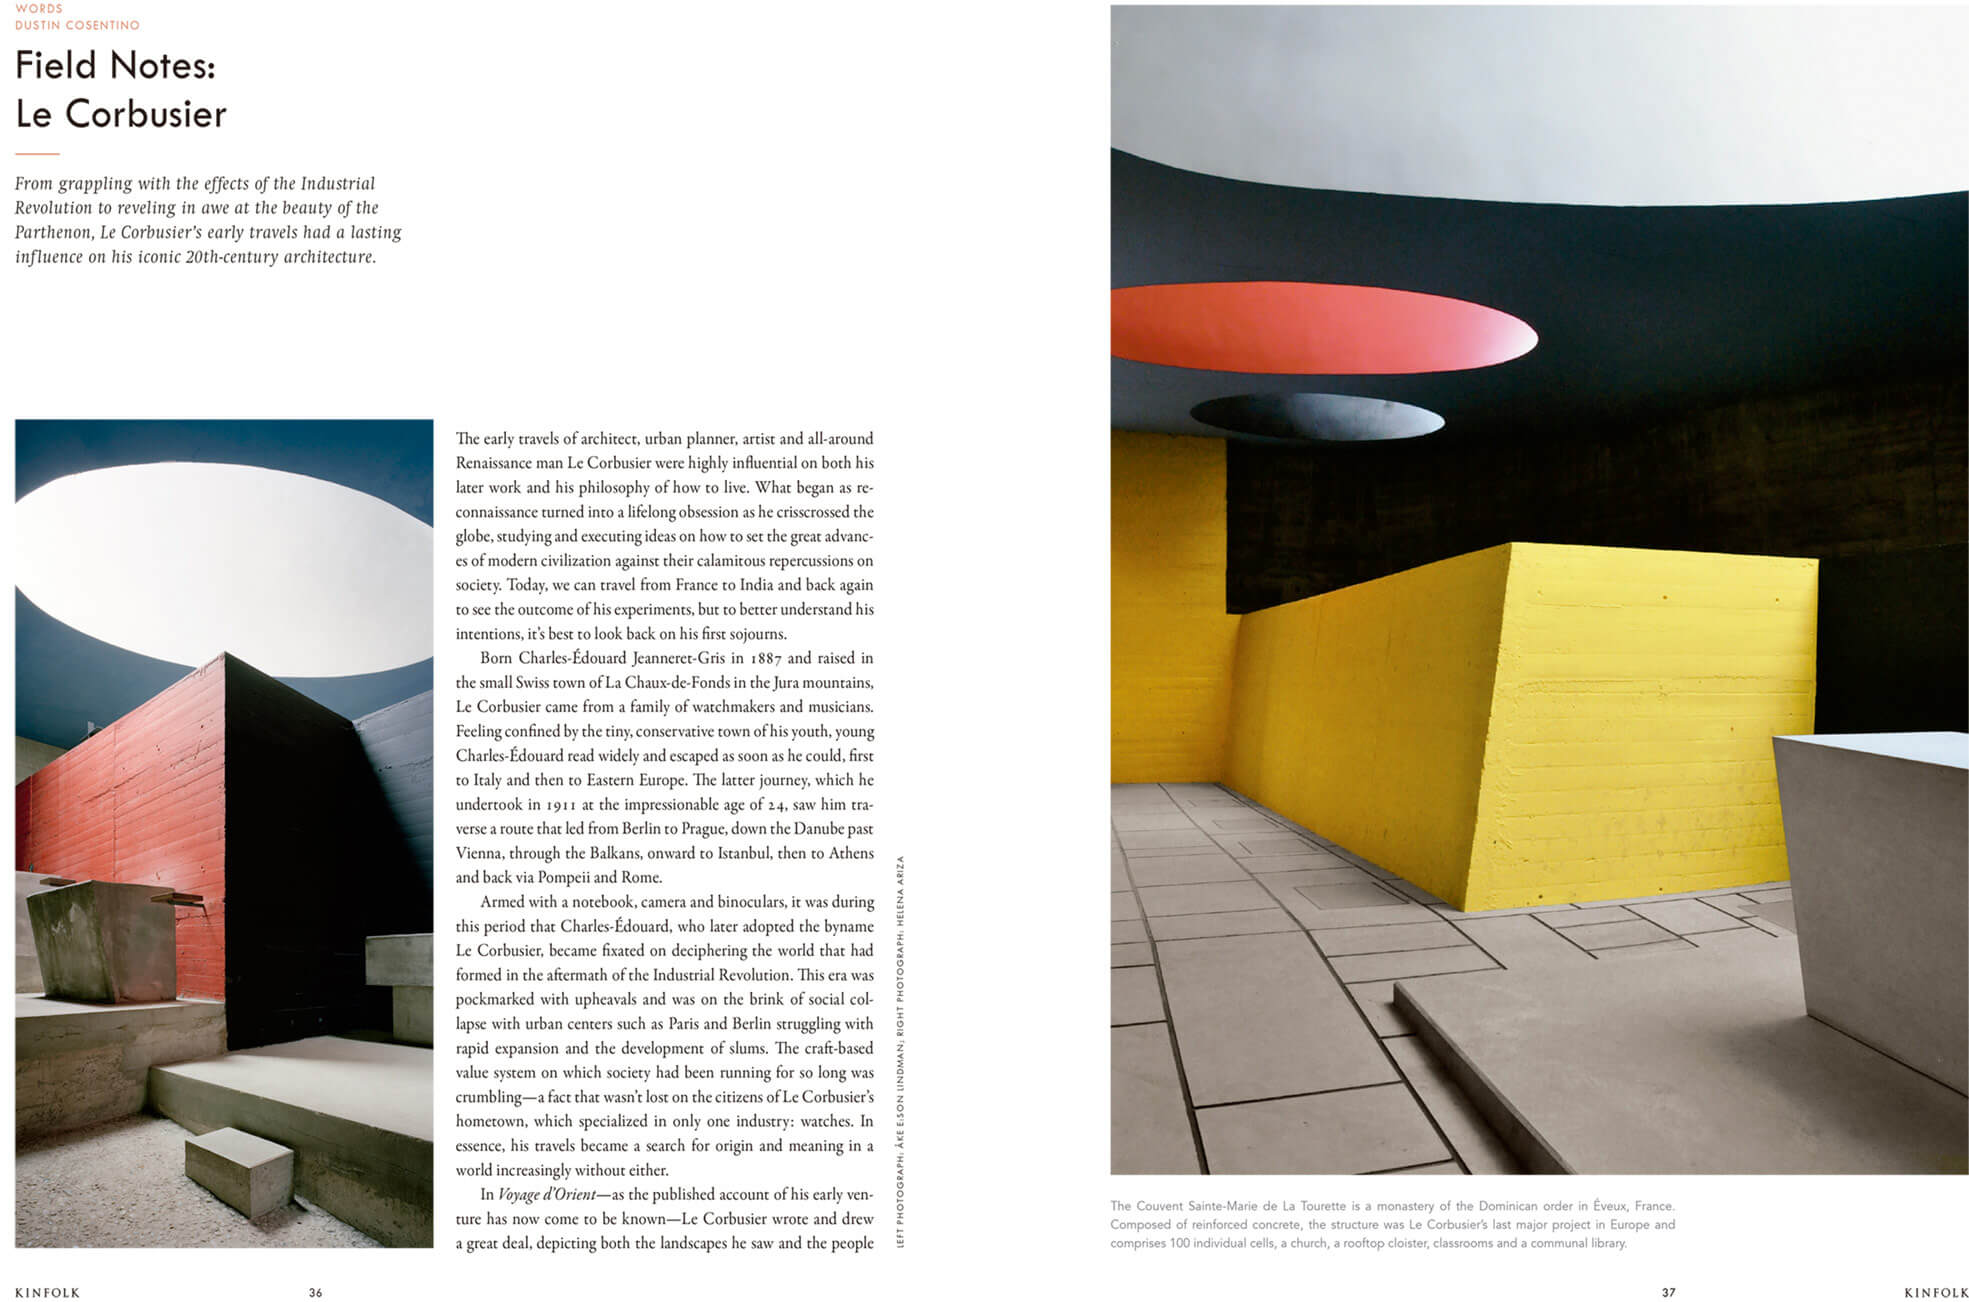 Kinfolk Travel Issue. Field Notes: Le Corbusier